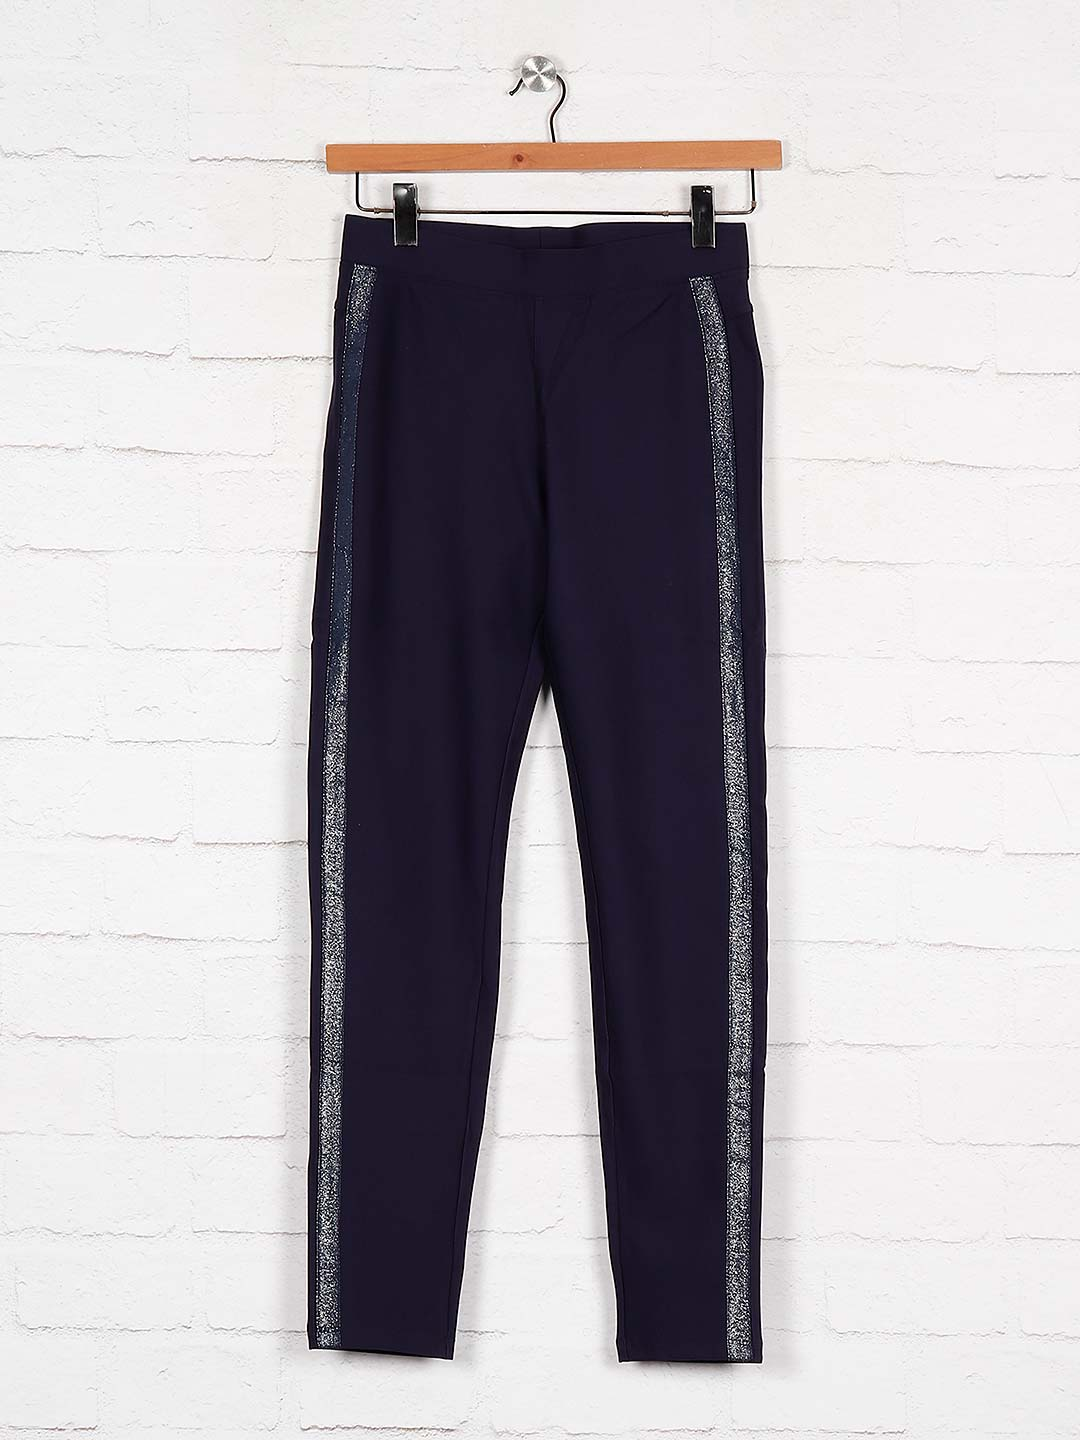 Boom navy blue slim fit casual jeggings in cotton?imgeng=w_400